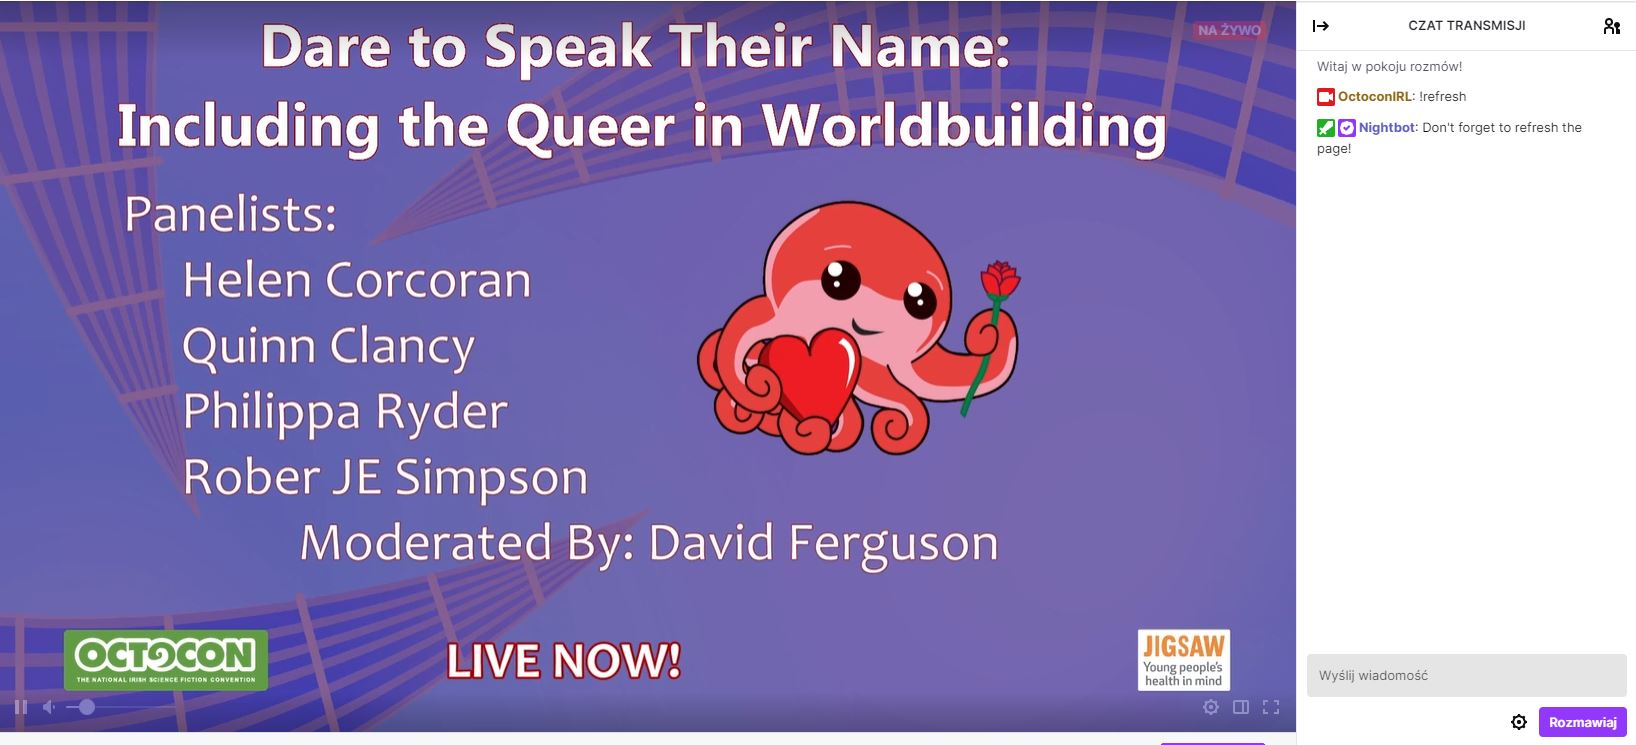 Screenshot from Twitch showing violet Octocon background. Big ctopus emoji with heart and rose, title of the panel 'Dare to Speak Their Name: Including the Queer in Worldbuilding', and the list of panelists.